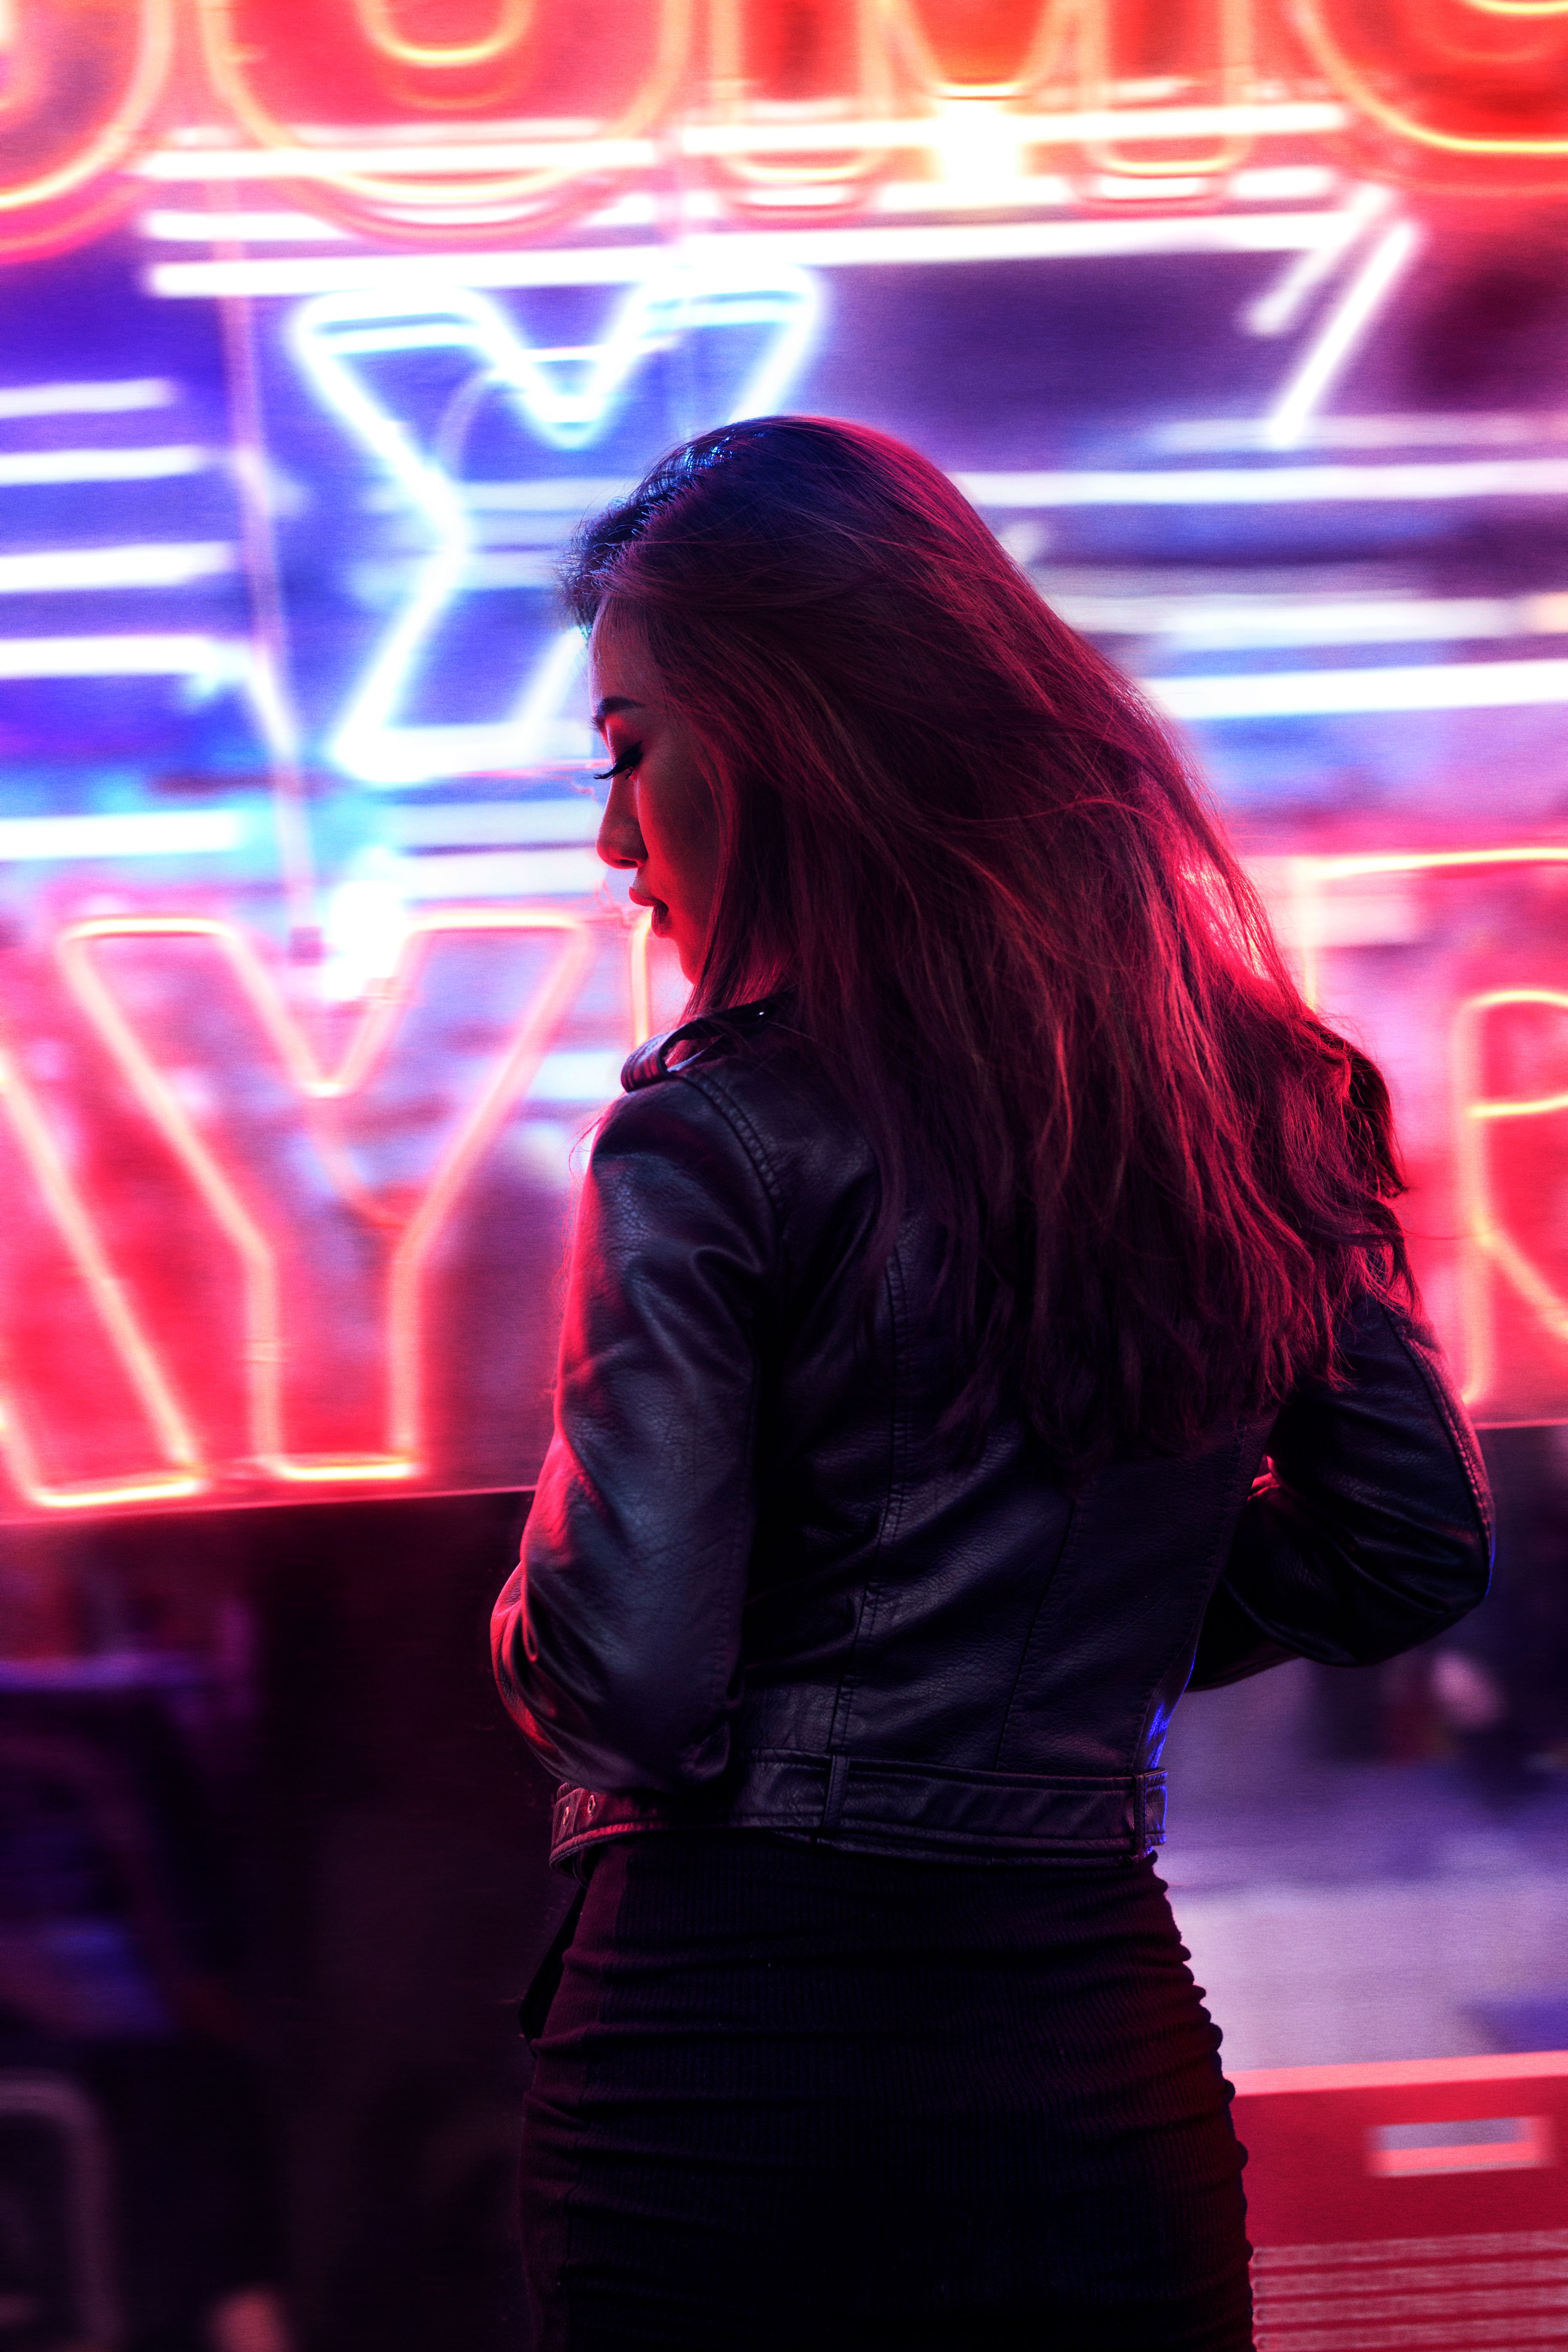 Neon Light Portrait On Behance: Pin By Mushu Costa On Pictures